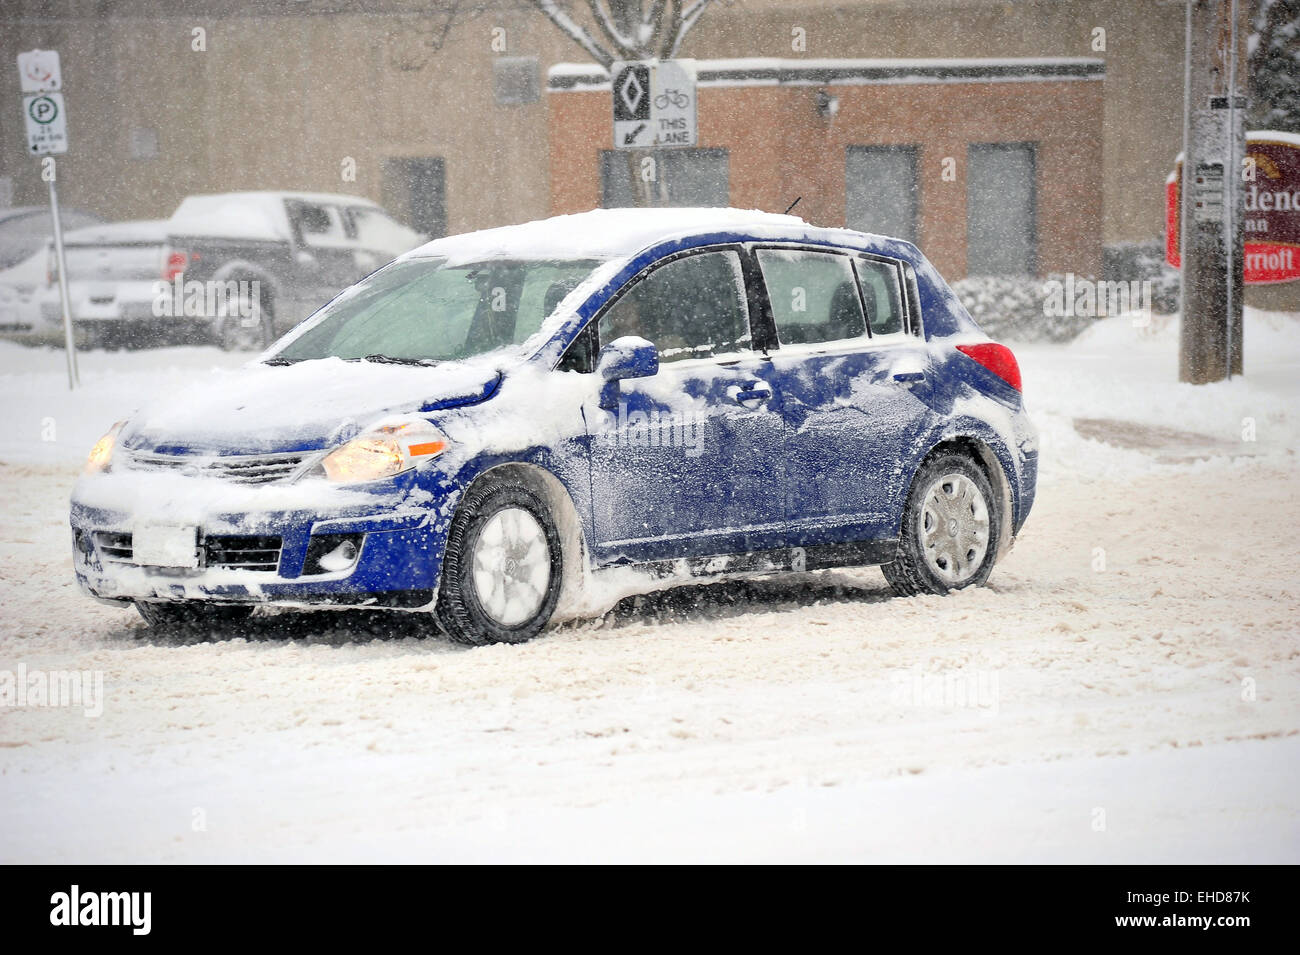 A cars spins its' front wheel driving on snowy roads in Canada. - Stock Image